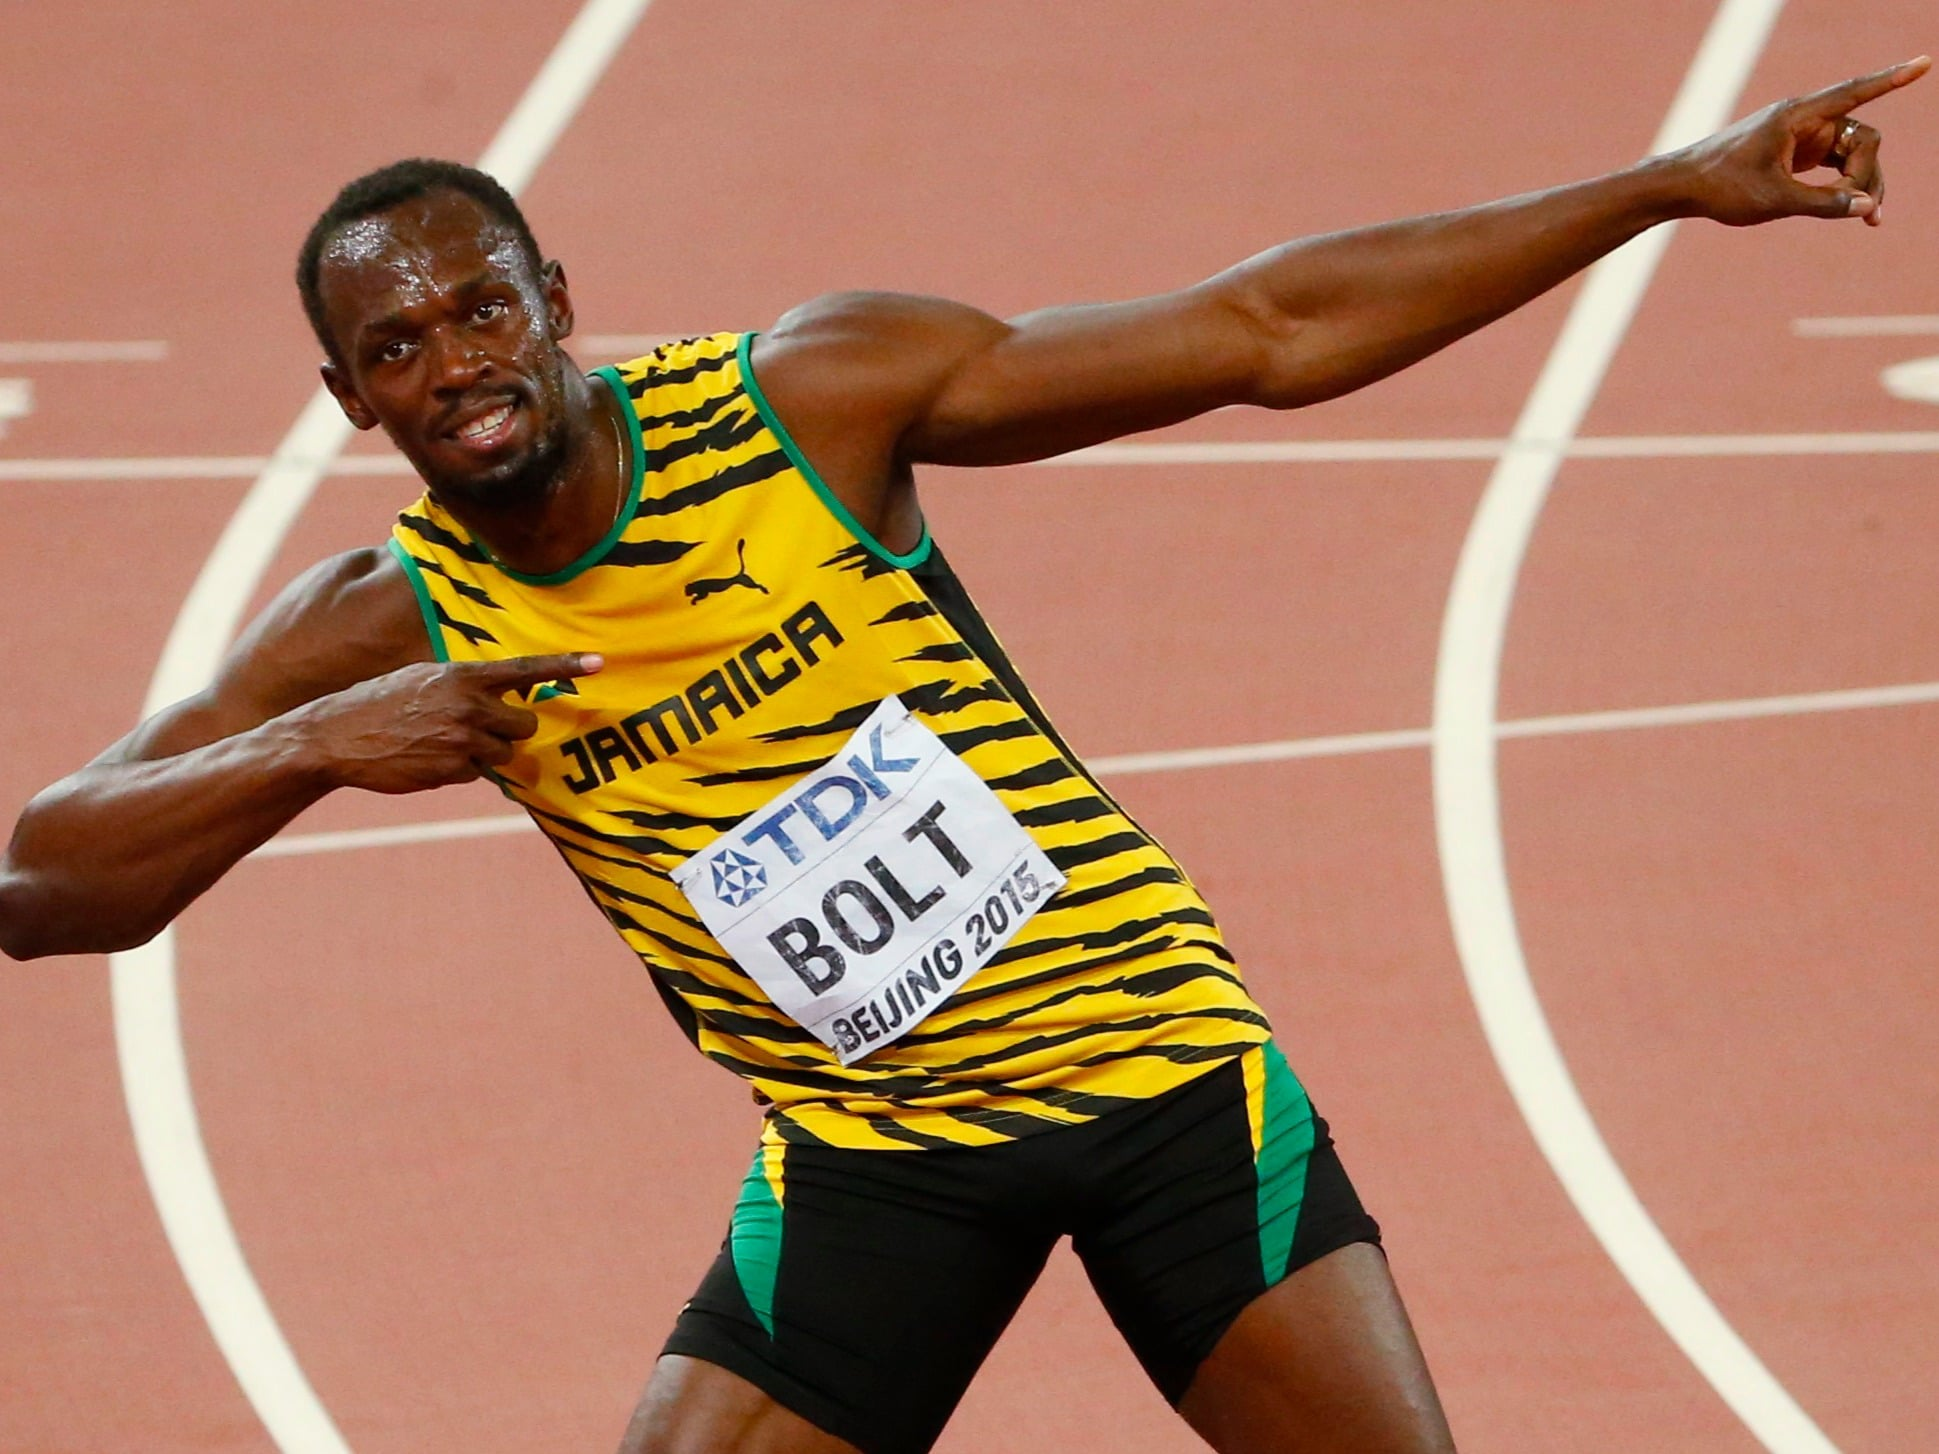 Usain Bolt 100m Olympic Victory go into his famous Lighting Bolt pose.